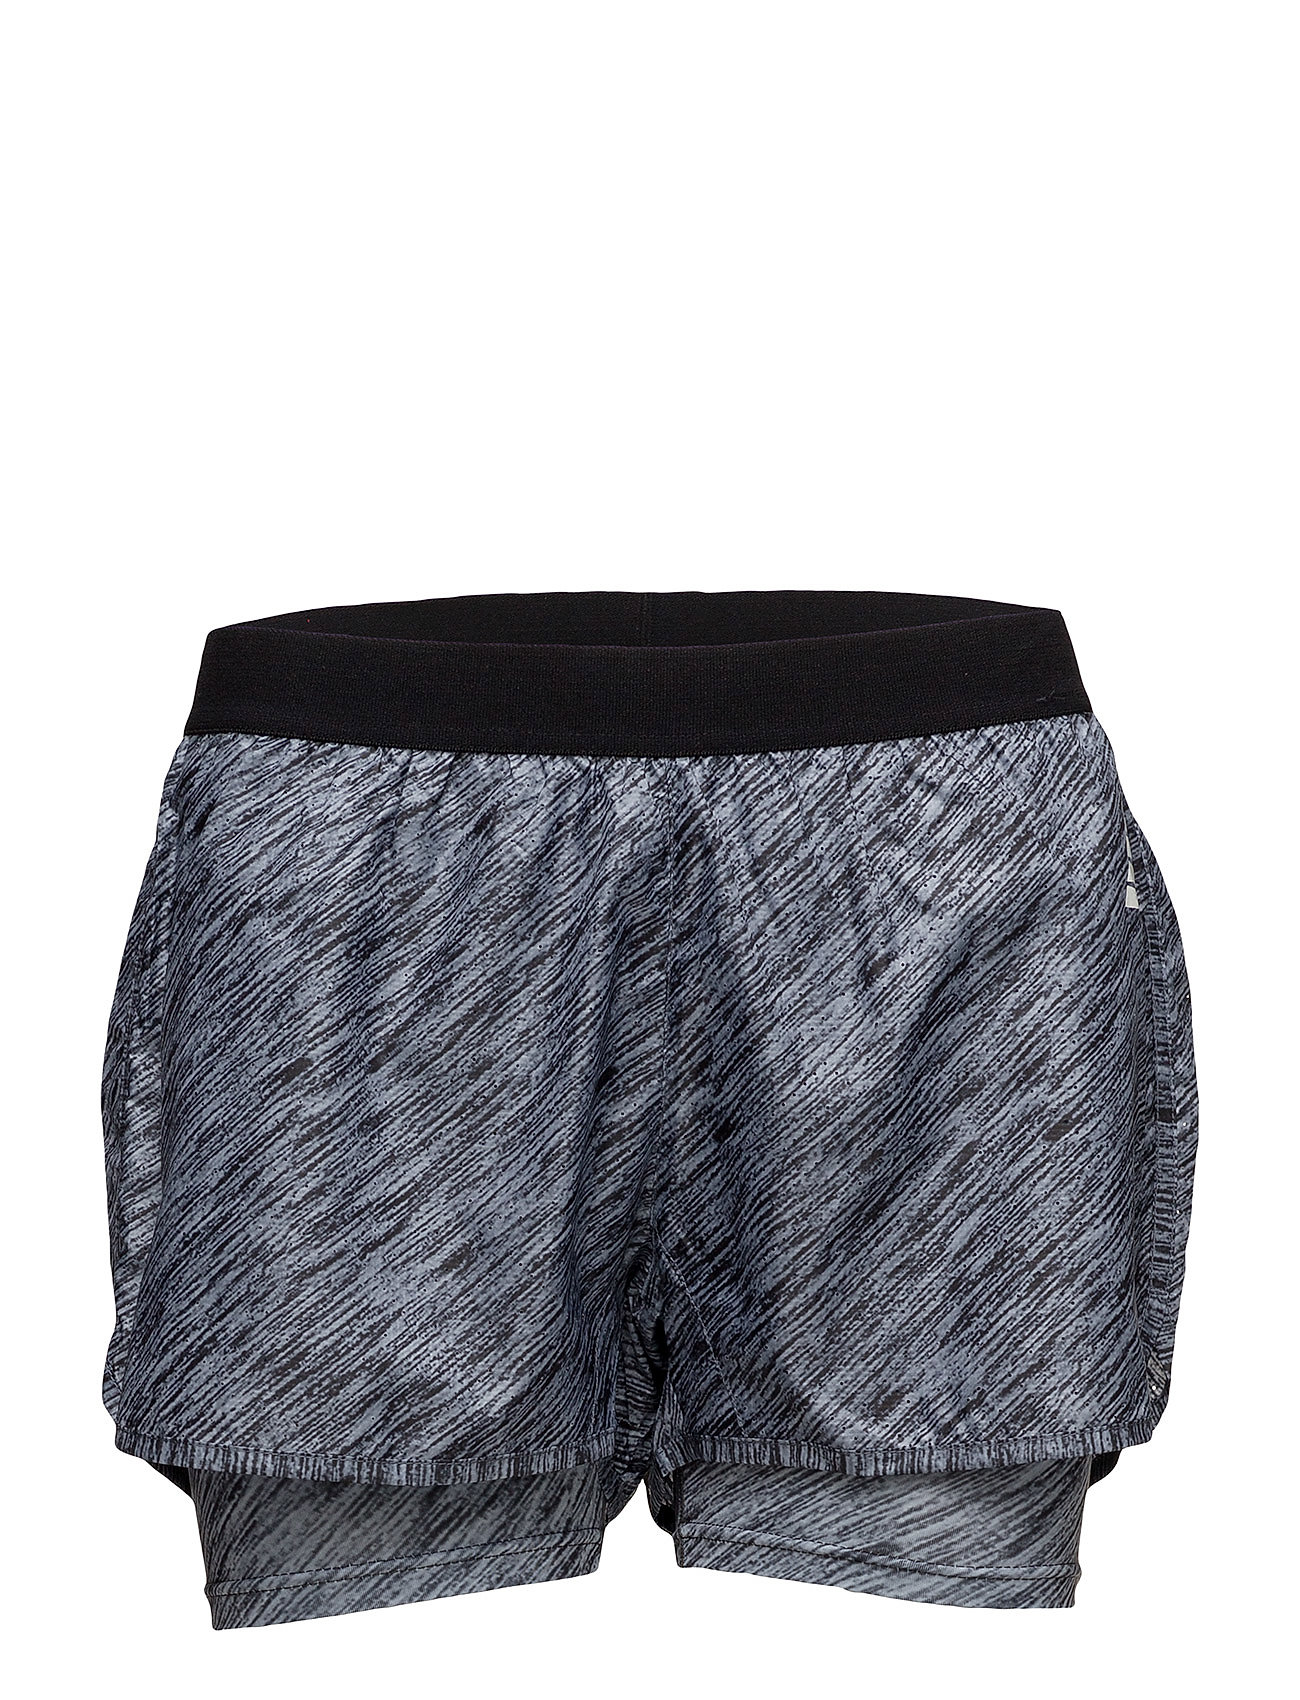 Imotion Heather 2 Layer Shorts thumbnail